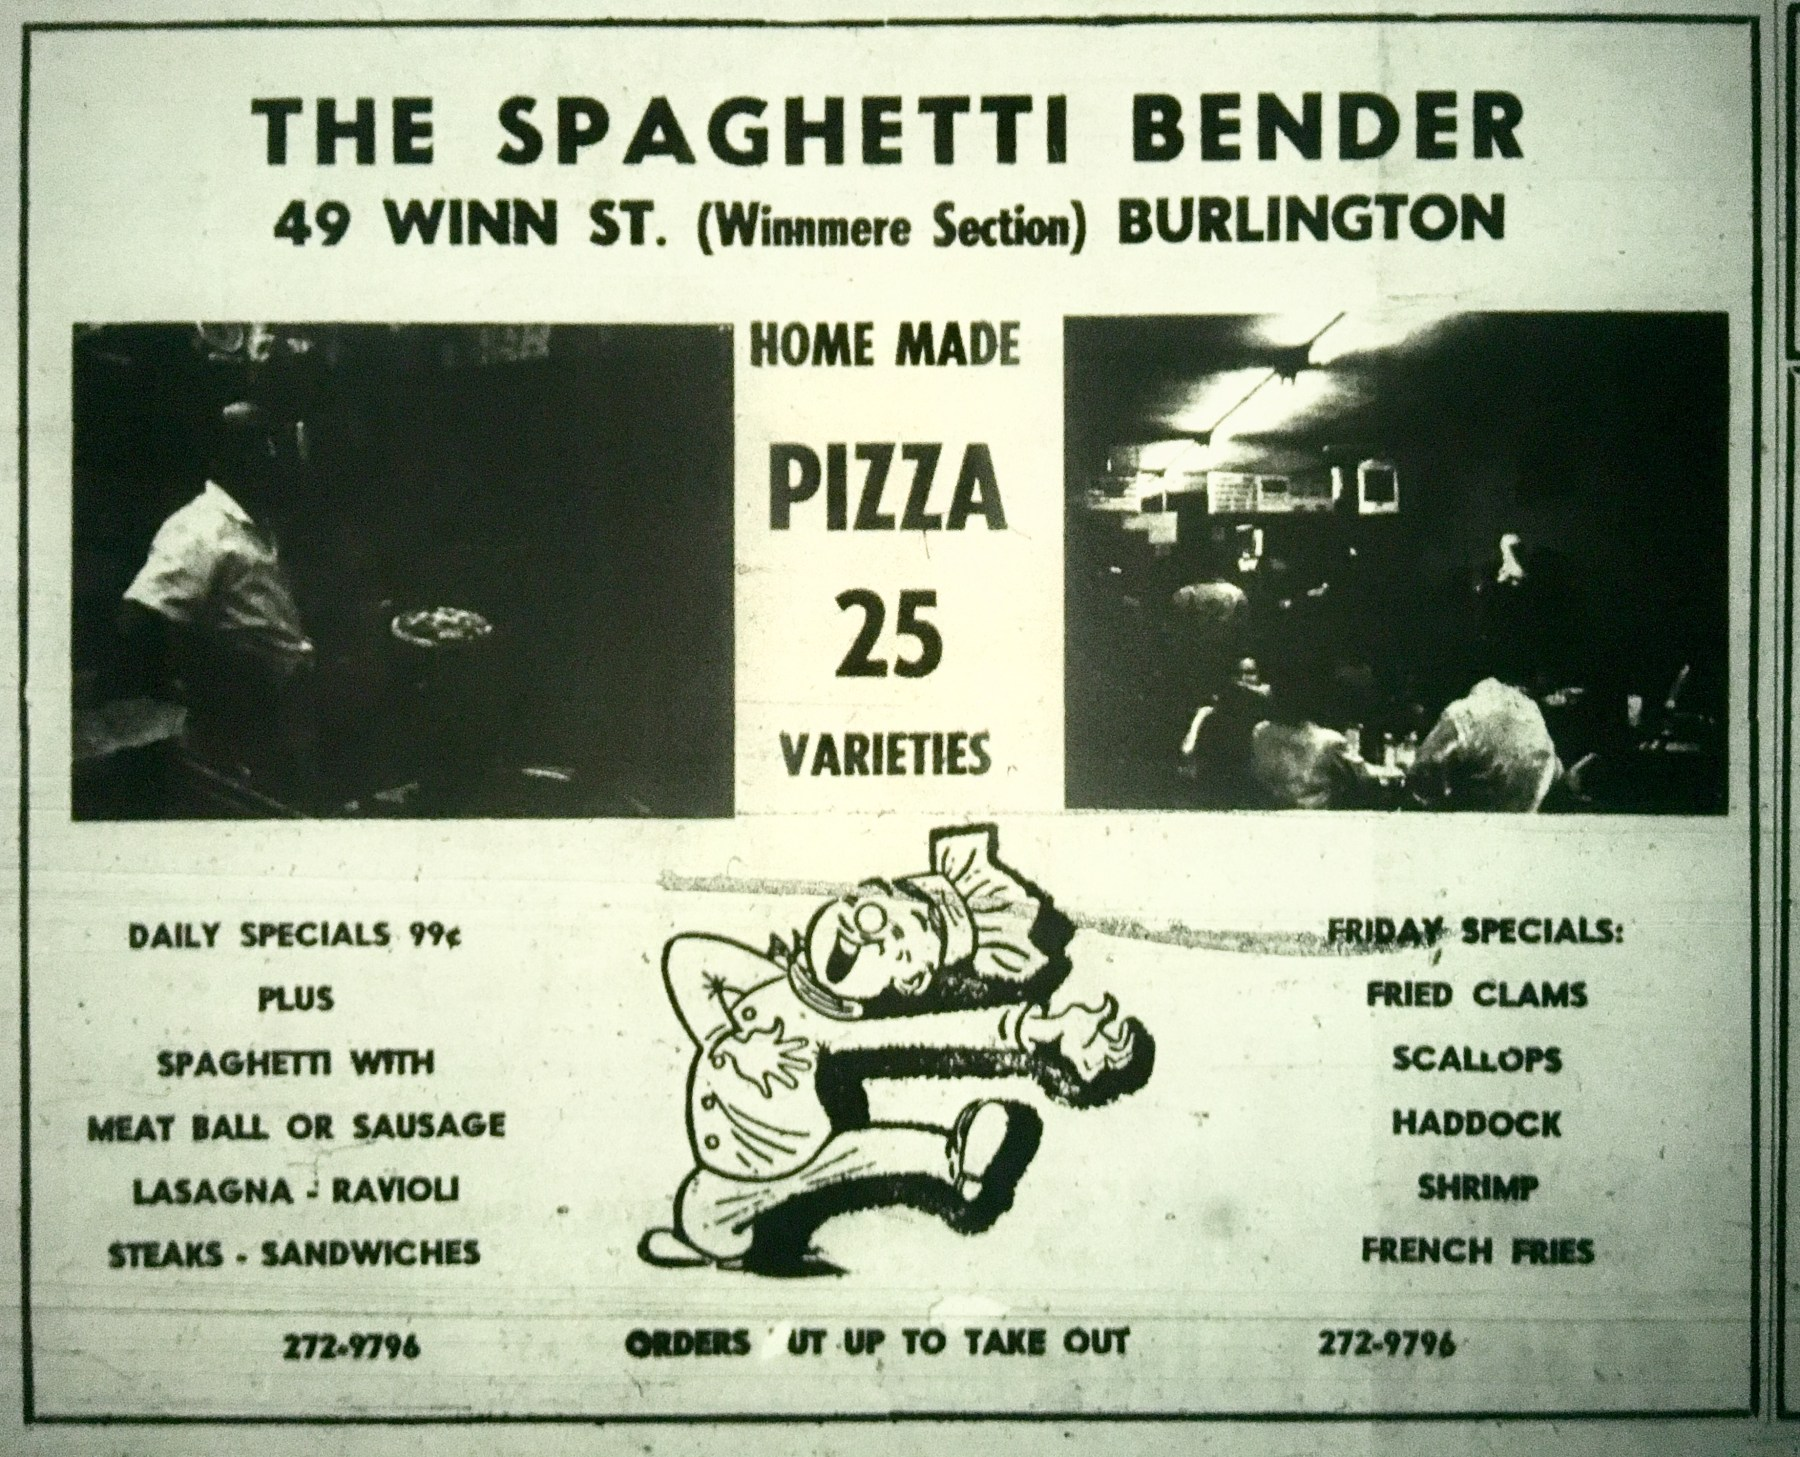 The Spaghetti Bender, Burlington MA